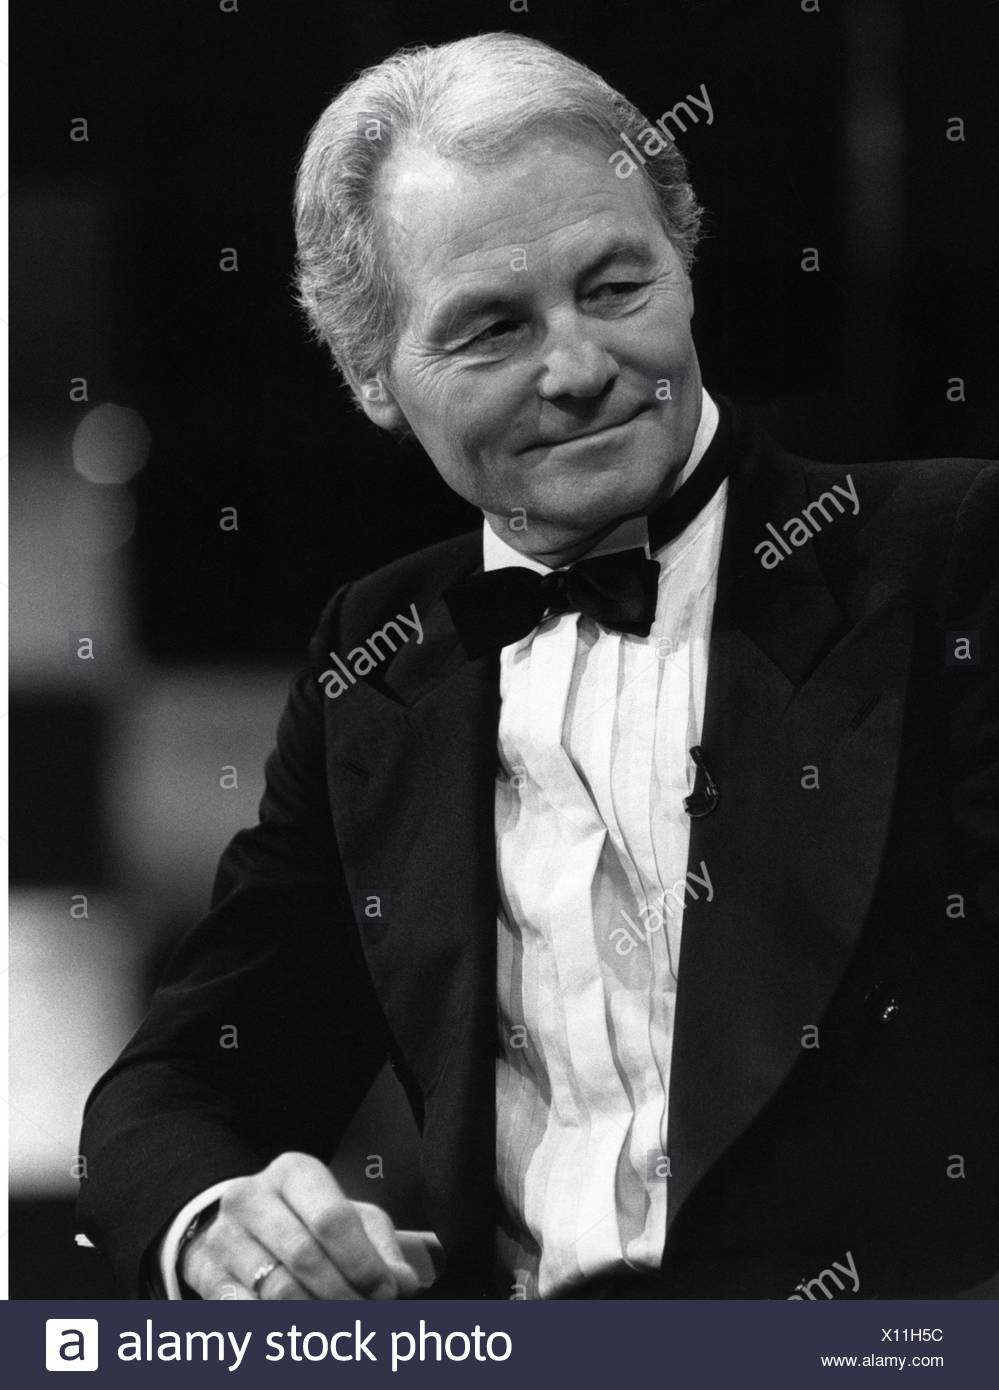 Valerien, Harry, 4.11.1923 - 12.10.2012, German television presenter, half length for the telecast 'Live', 1988, Additional-Rights-Clearances-NA - Stock Image